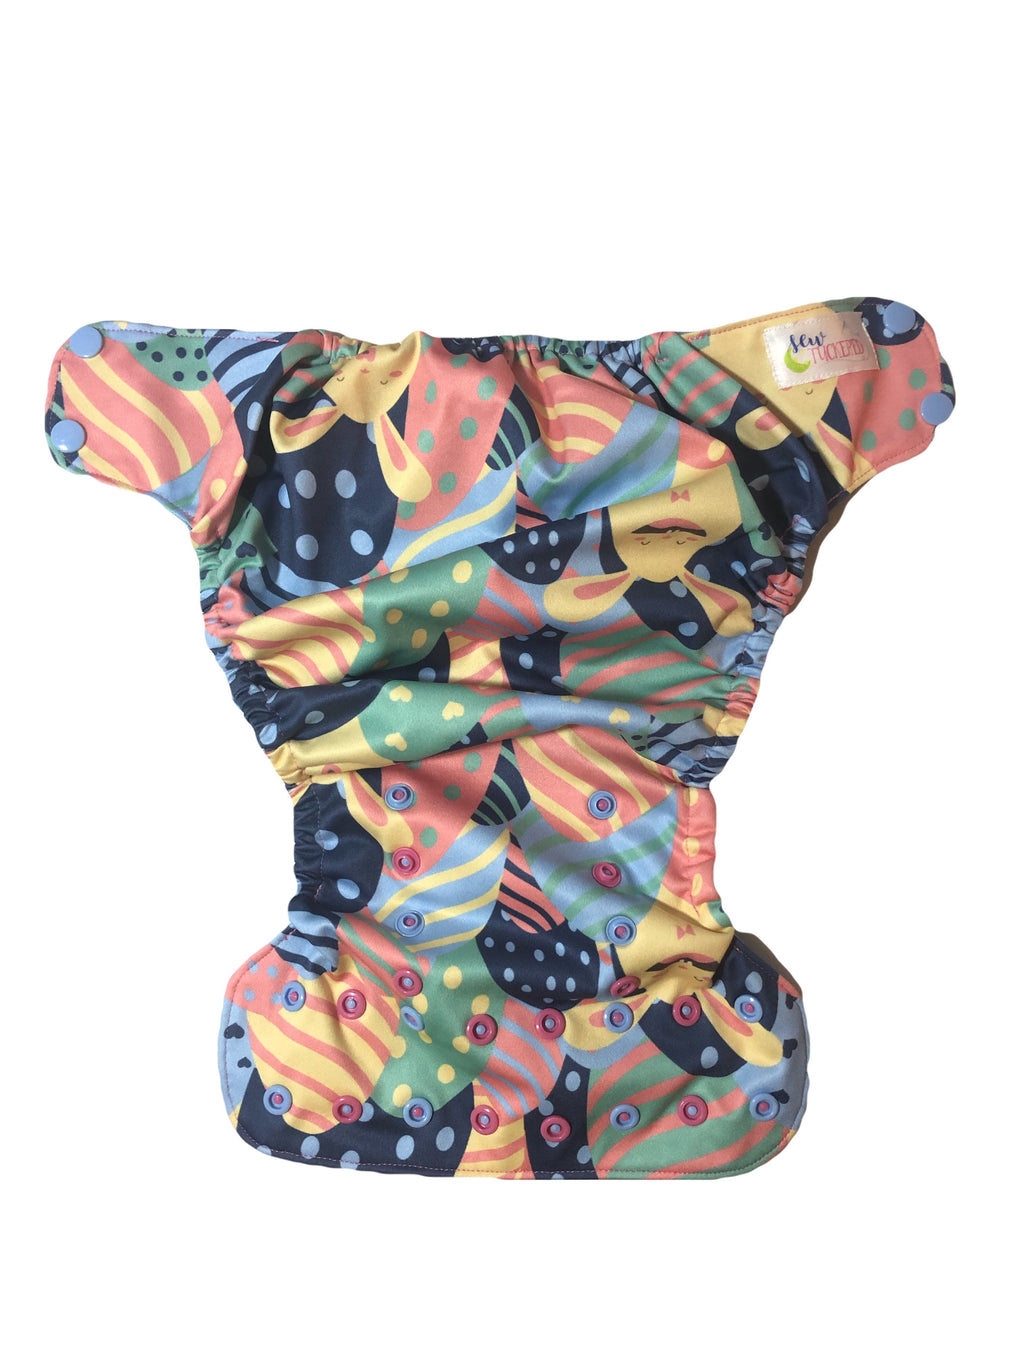 One Size Pocket Cloth Diaper